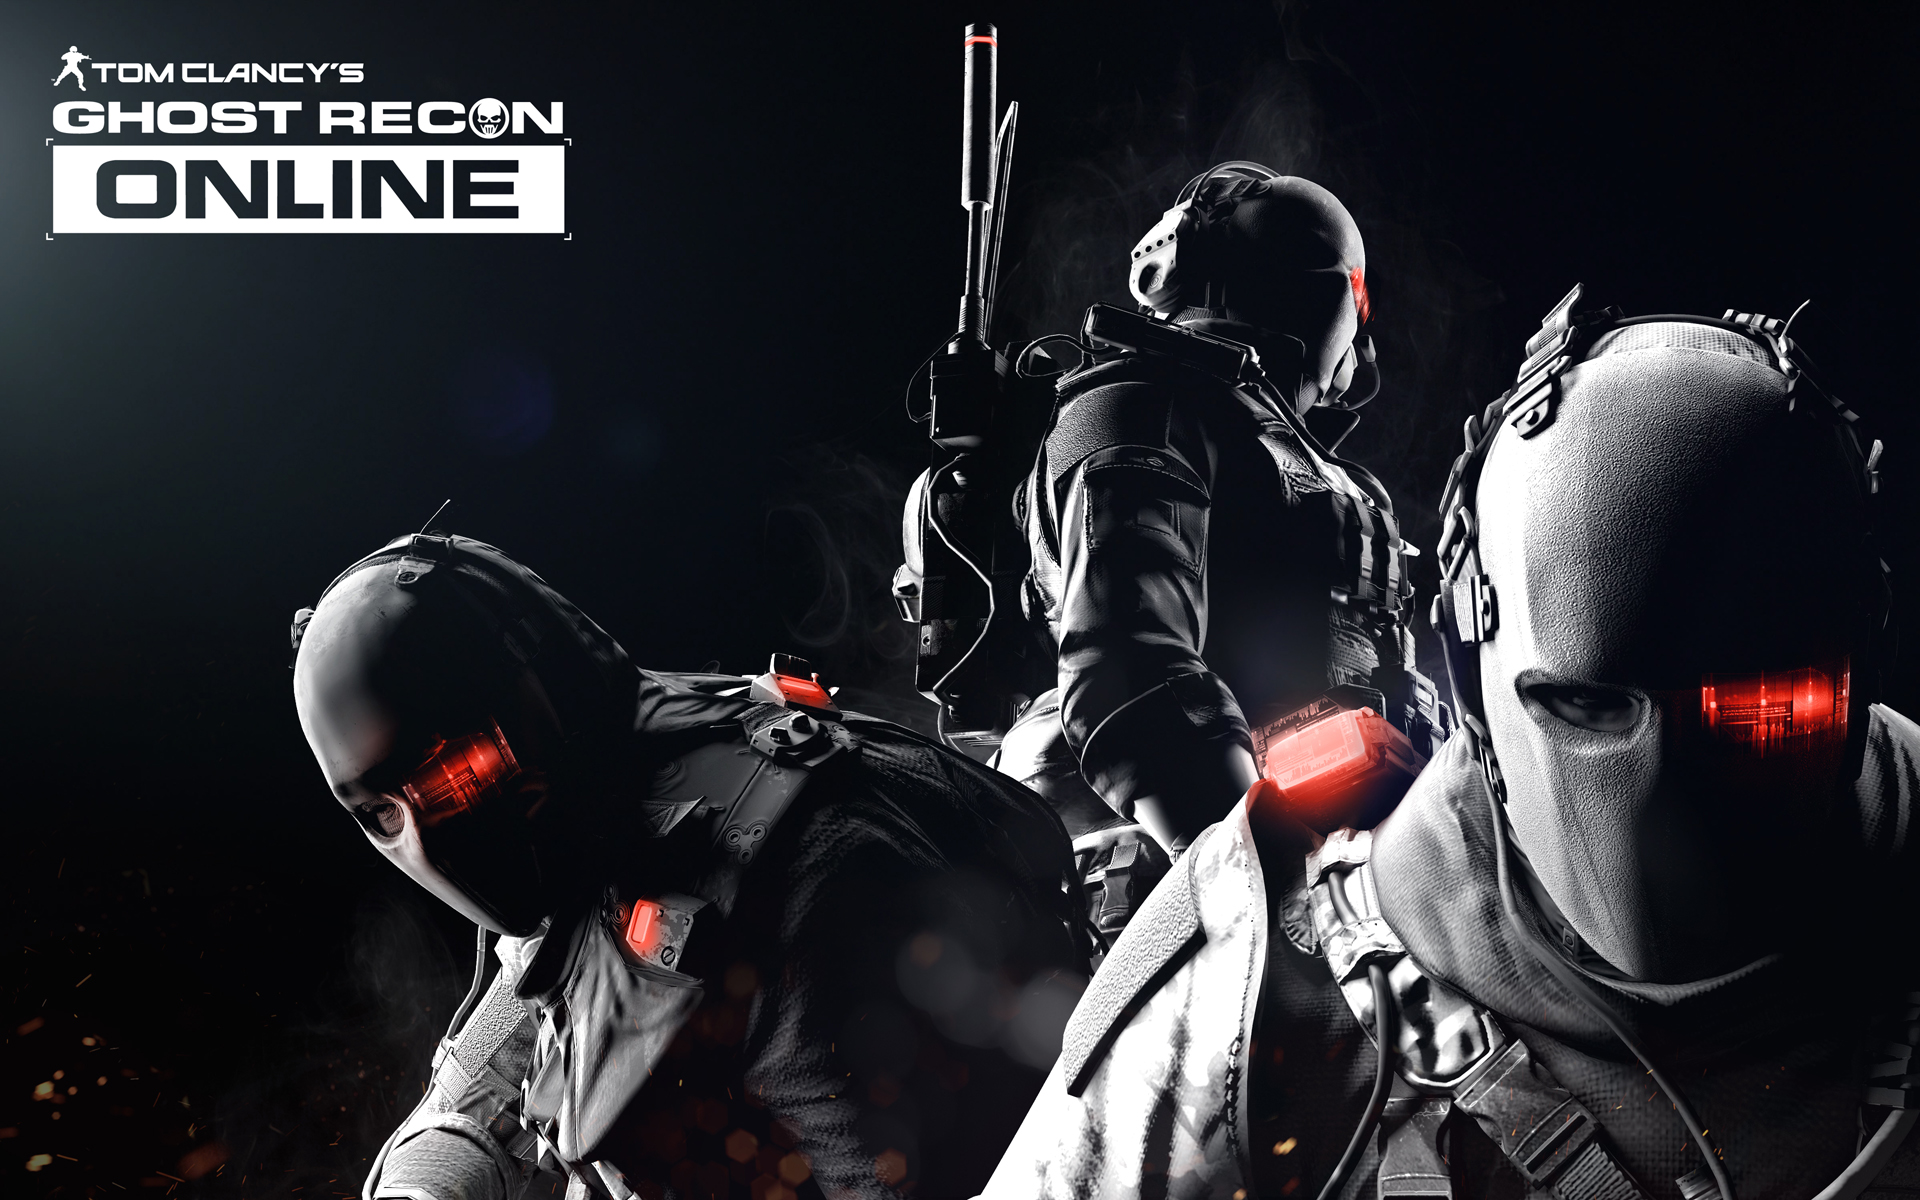 recon ghost online clancys tom wallpaper wallpapers walls 1920x1200